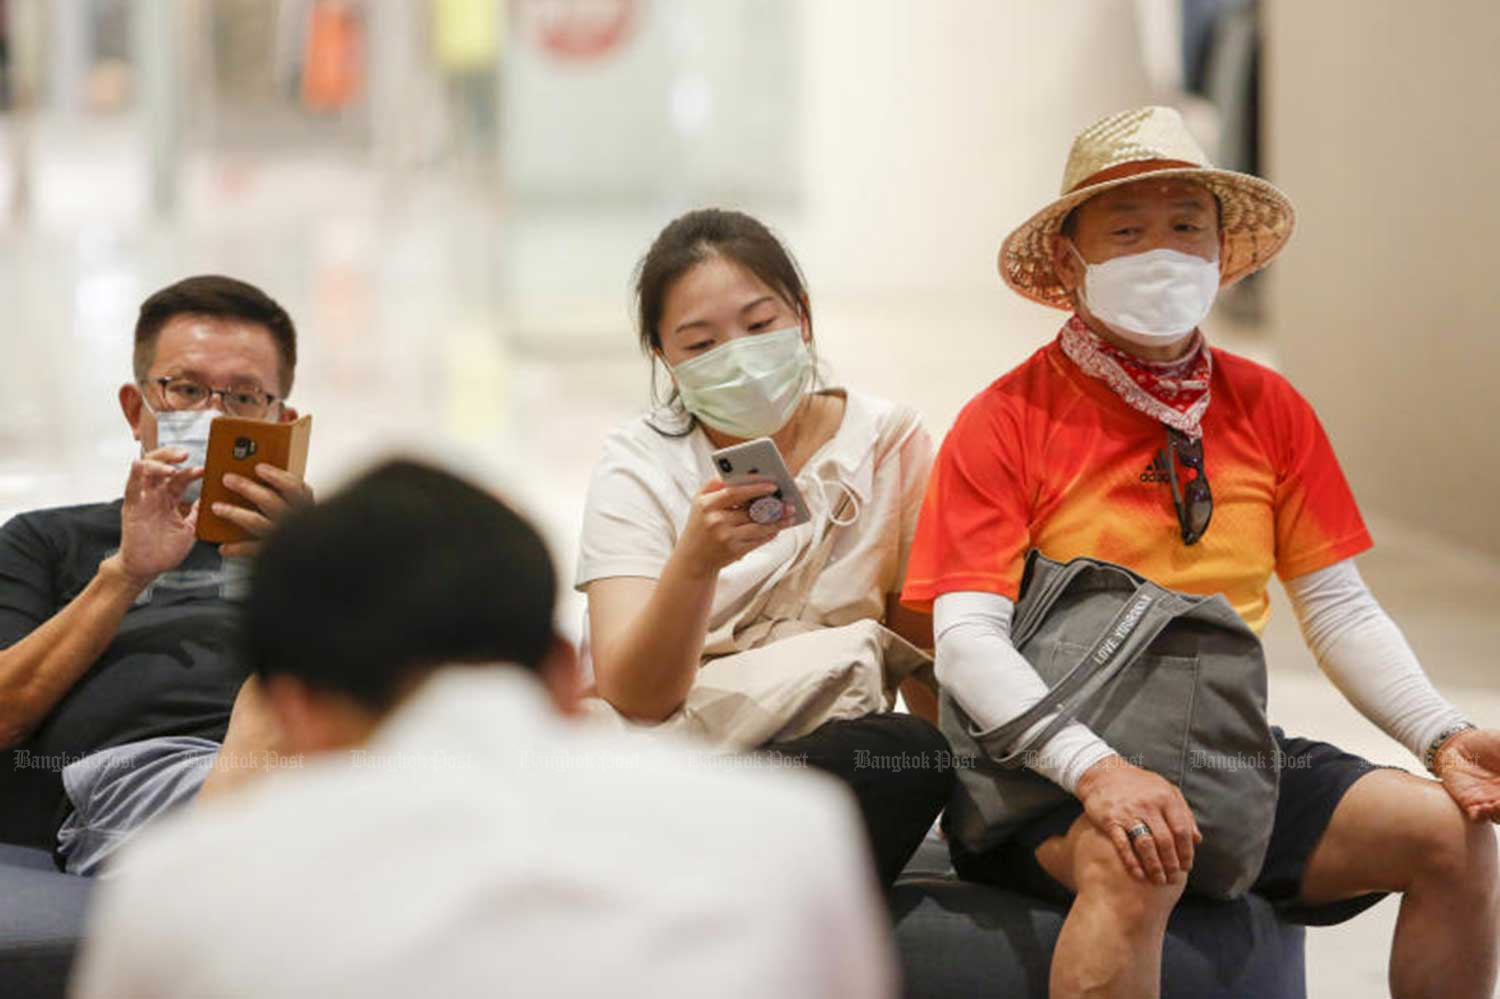 Chinese tourists wear masks at a mall in Bangkok. The tourism sector is already being directly harmed by the coronavirus outbreak. (Photo: Pattarapong Chatpattarsill)